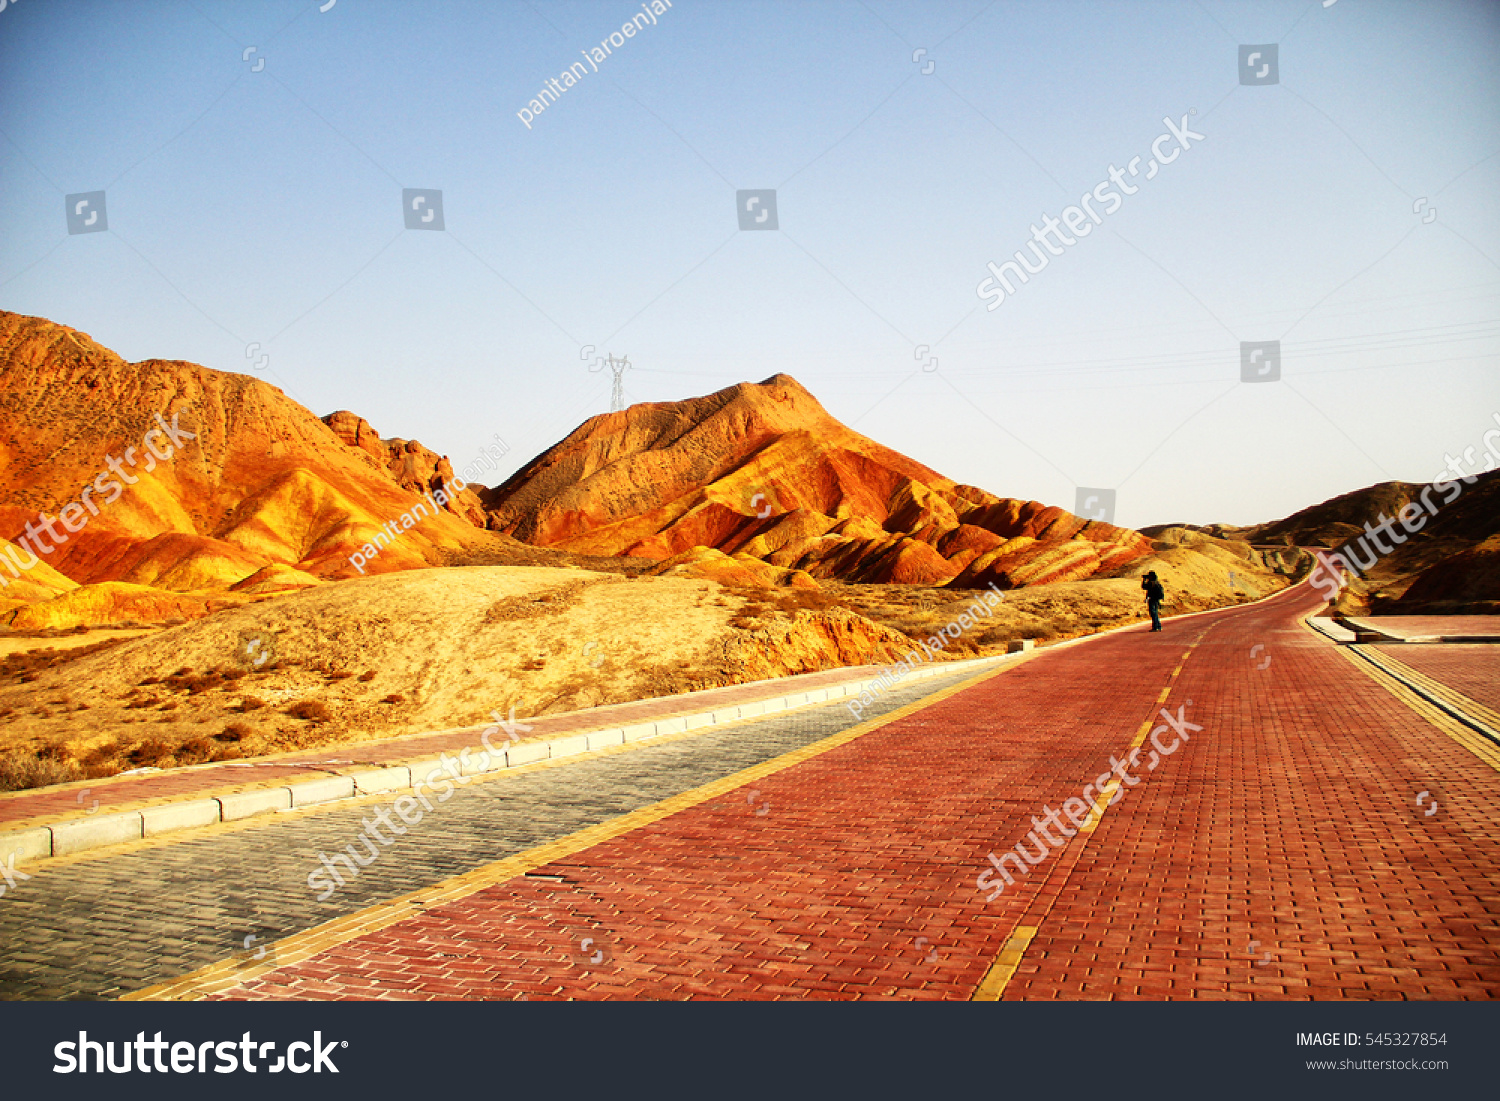 zhangye danxia how to get there